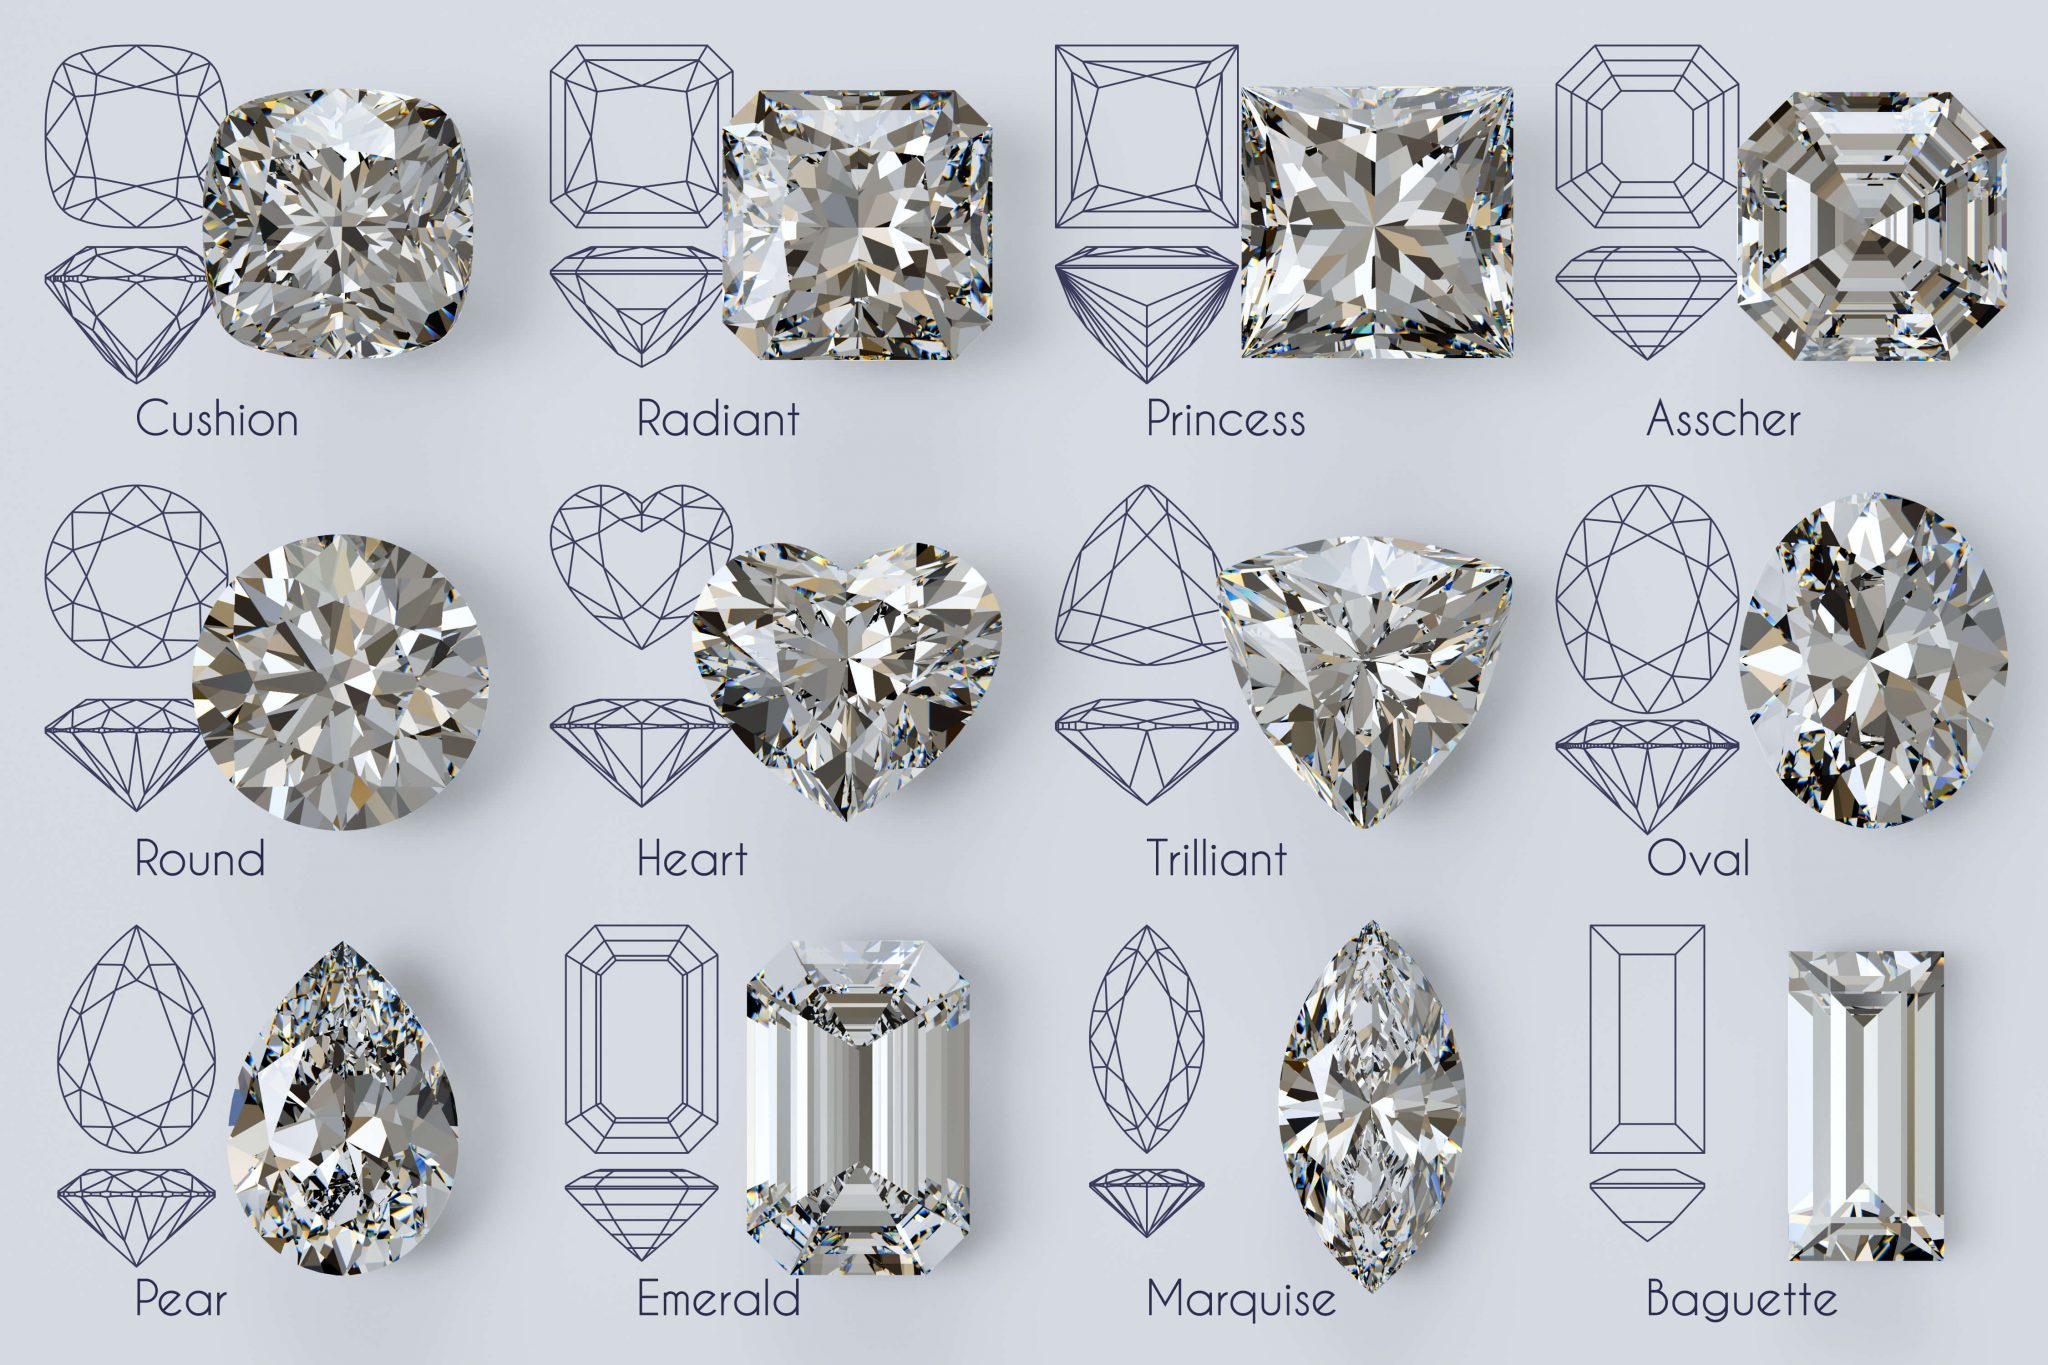 Twelve popular diamond shapes